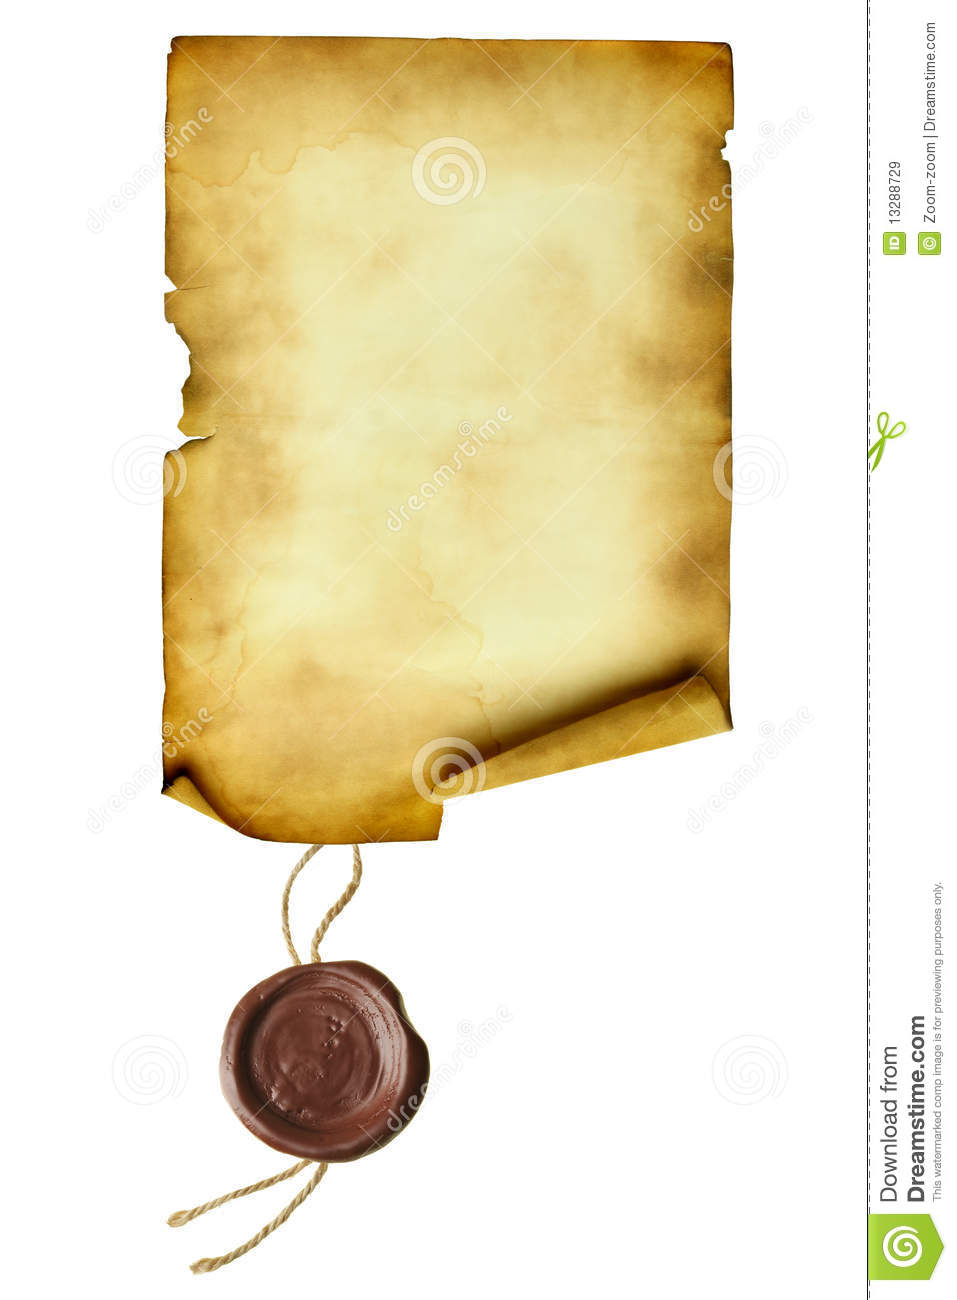 Background image zoom on scroll - Scroll With Wax Seal Royalty Free Stock Images